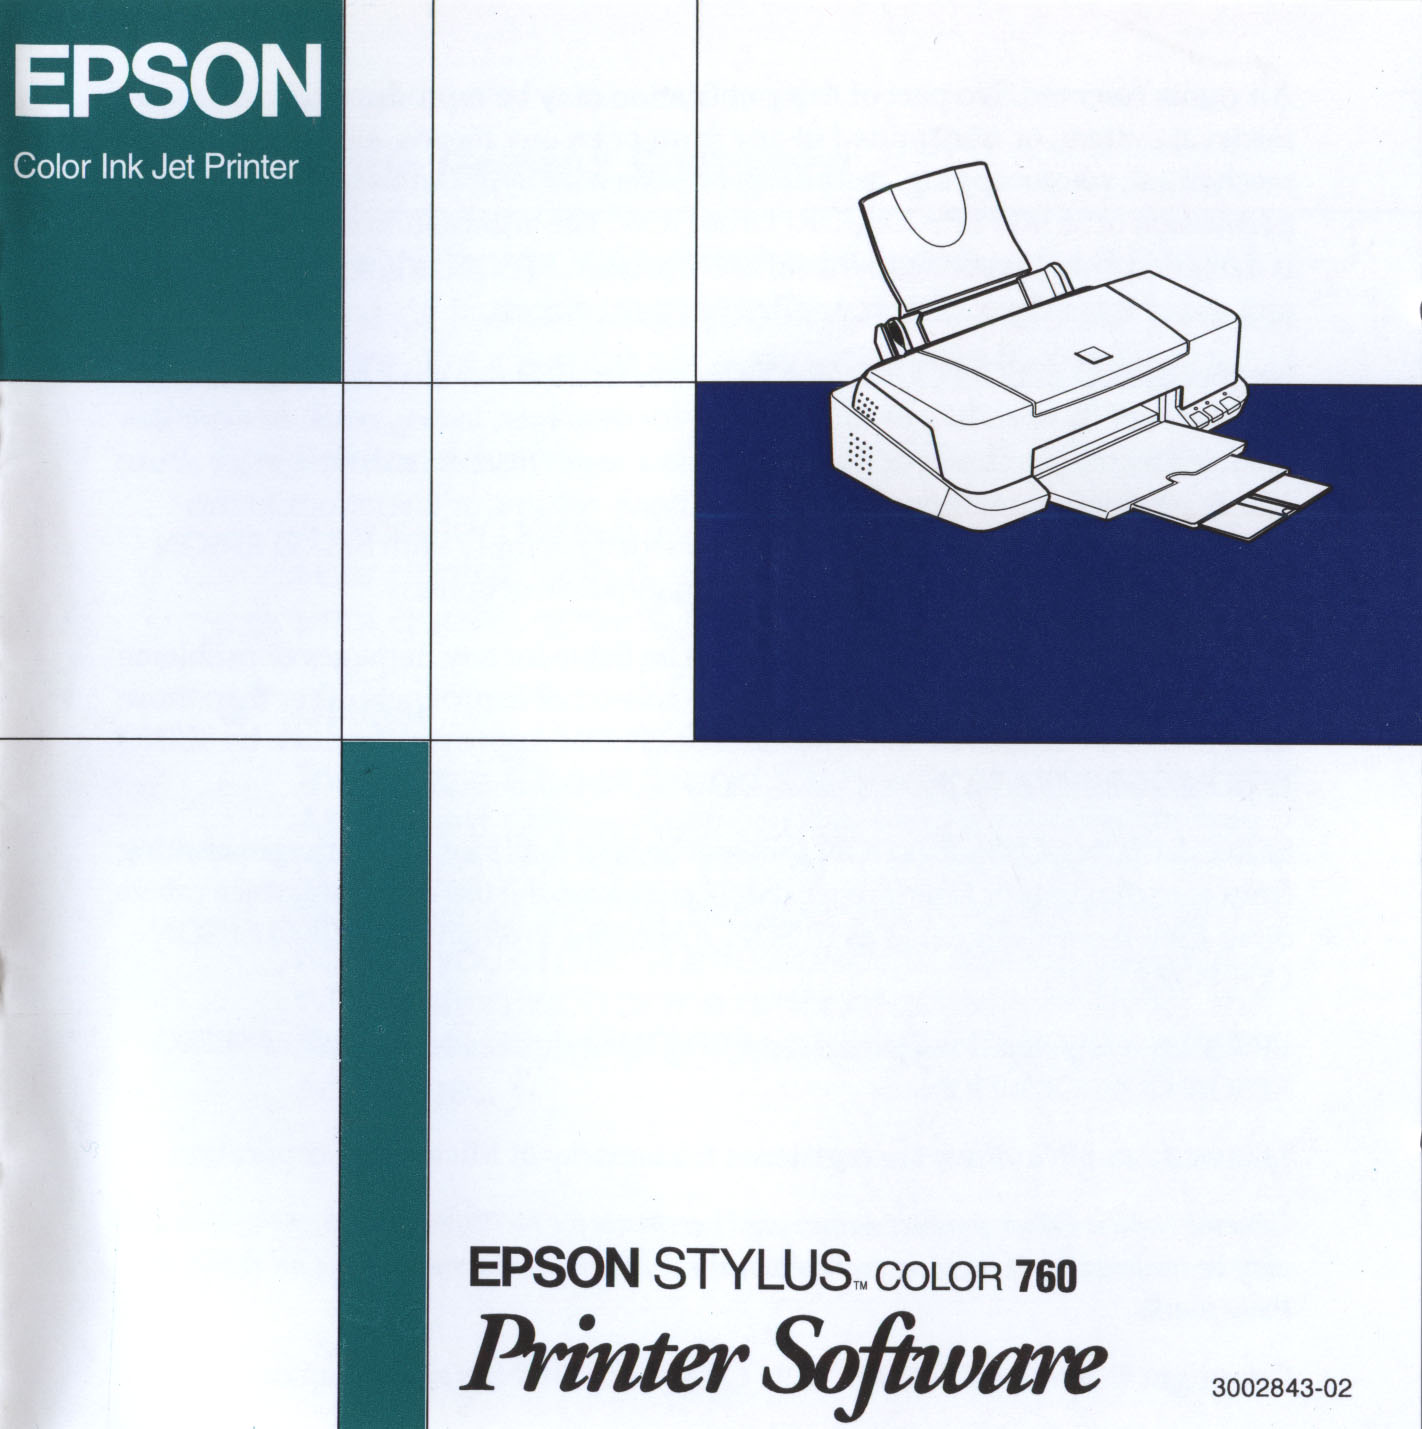 Epson Stylus Color 760 Printer Software (Windows and Macintosh)